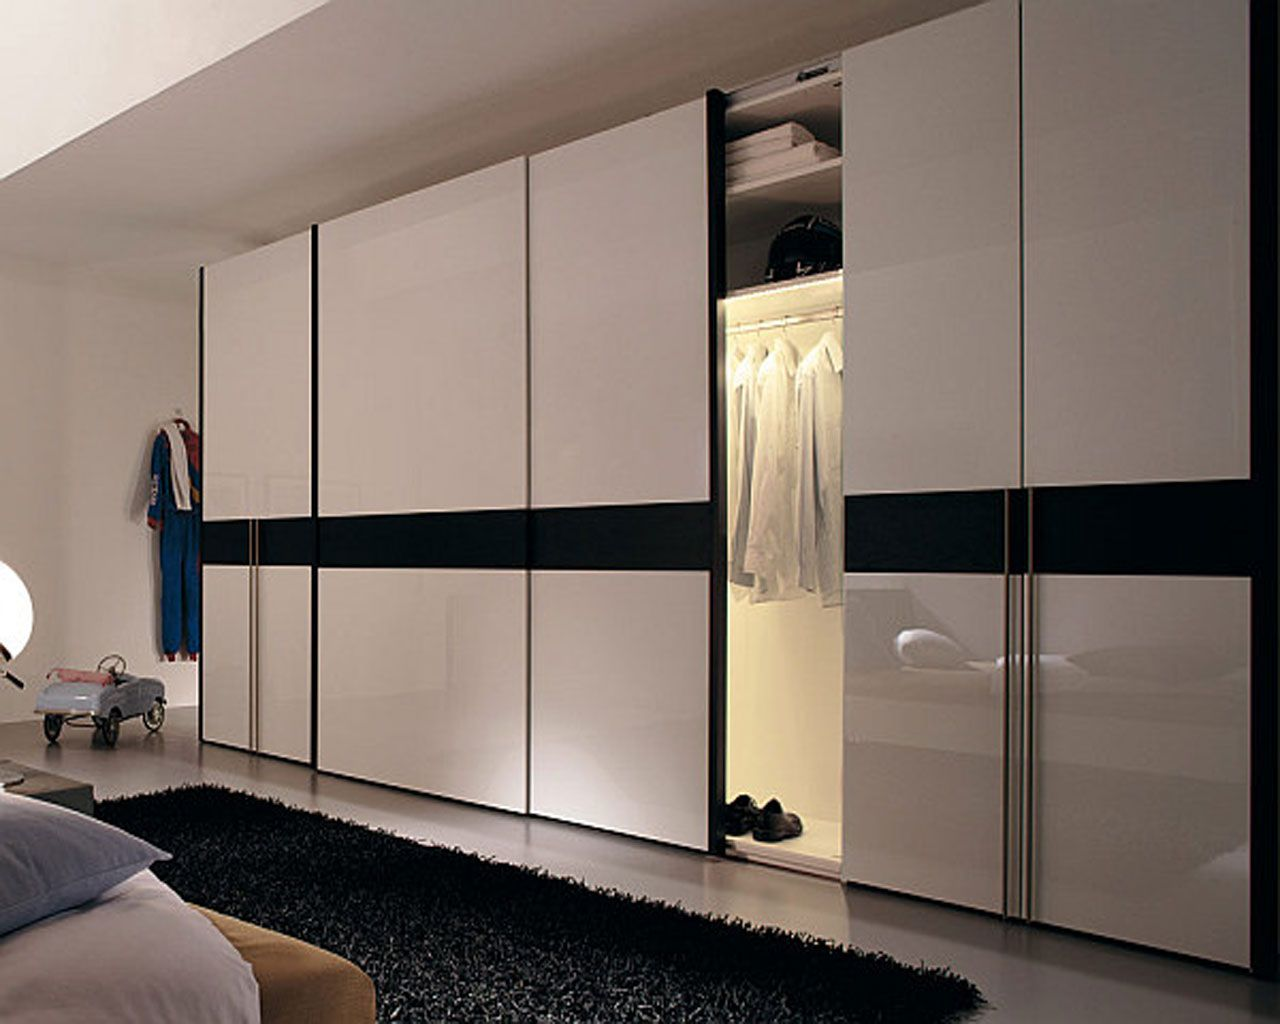 bedroom sliding doors. Stunning Bedroom Sliding Doors Pictures  Telkom us telkom